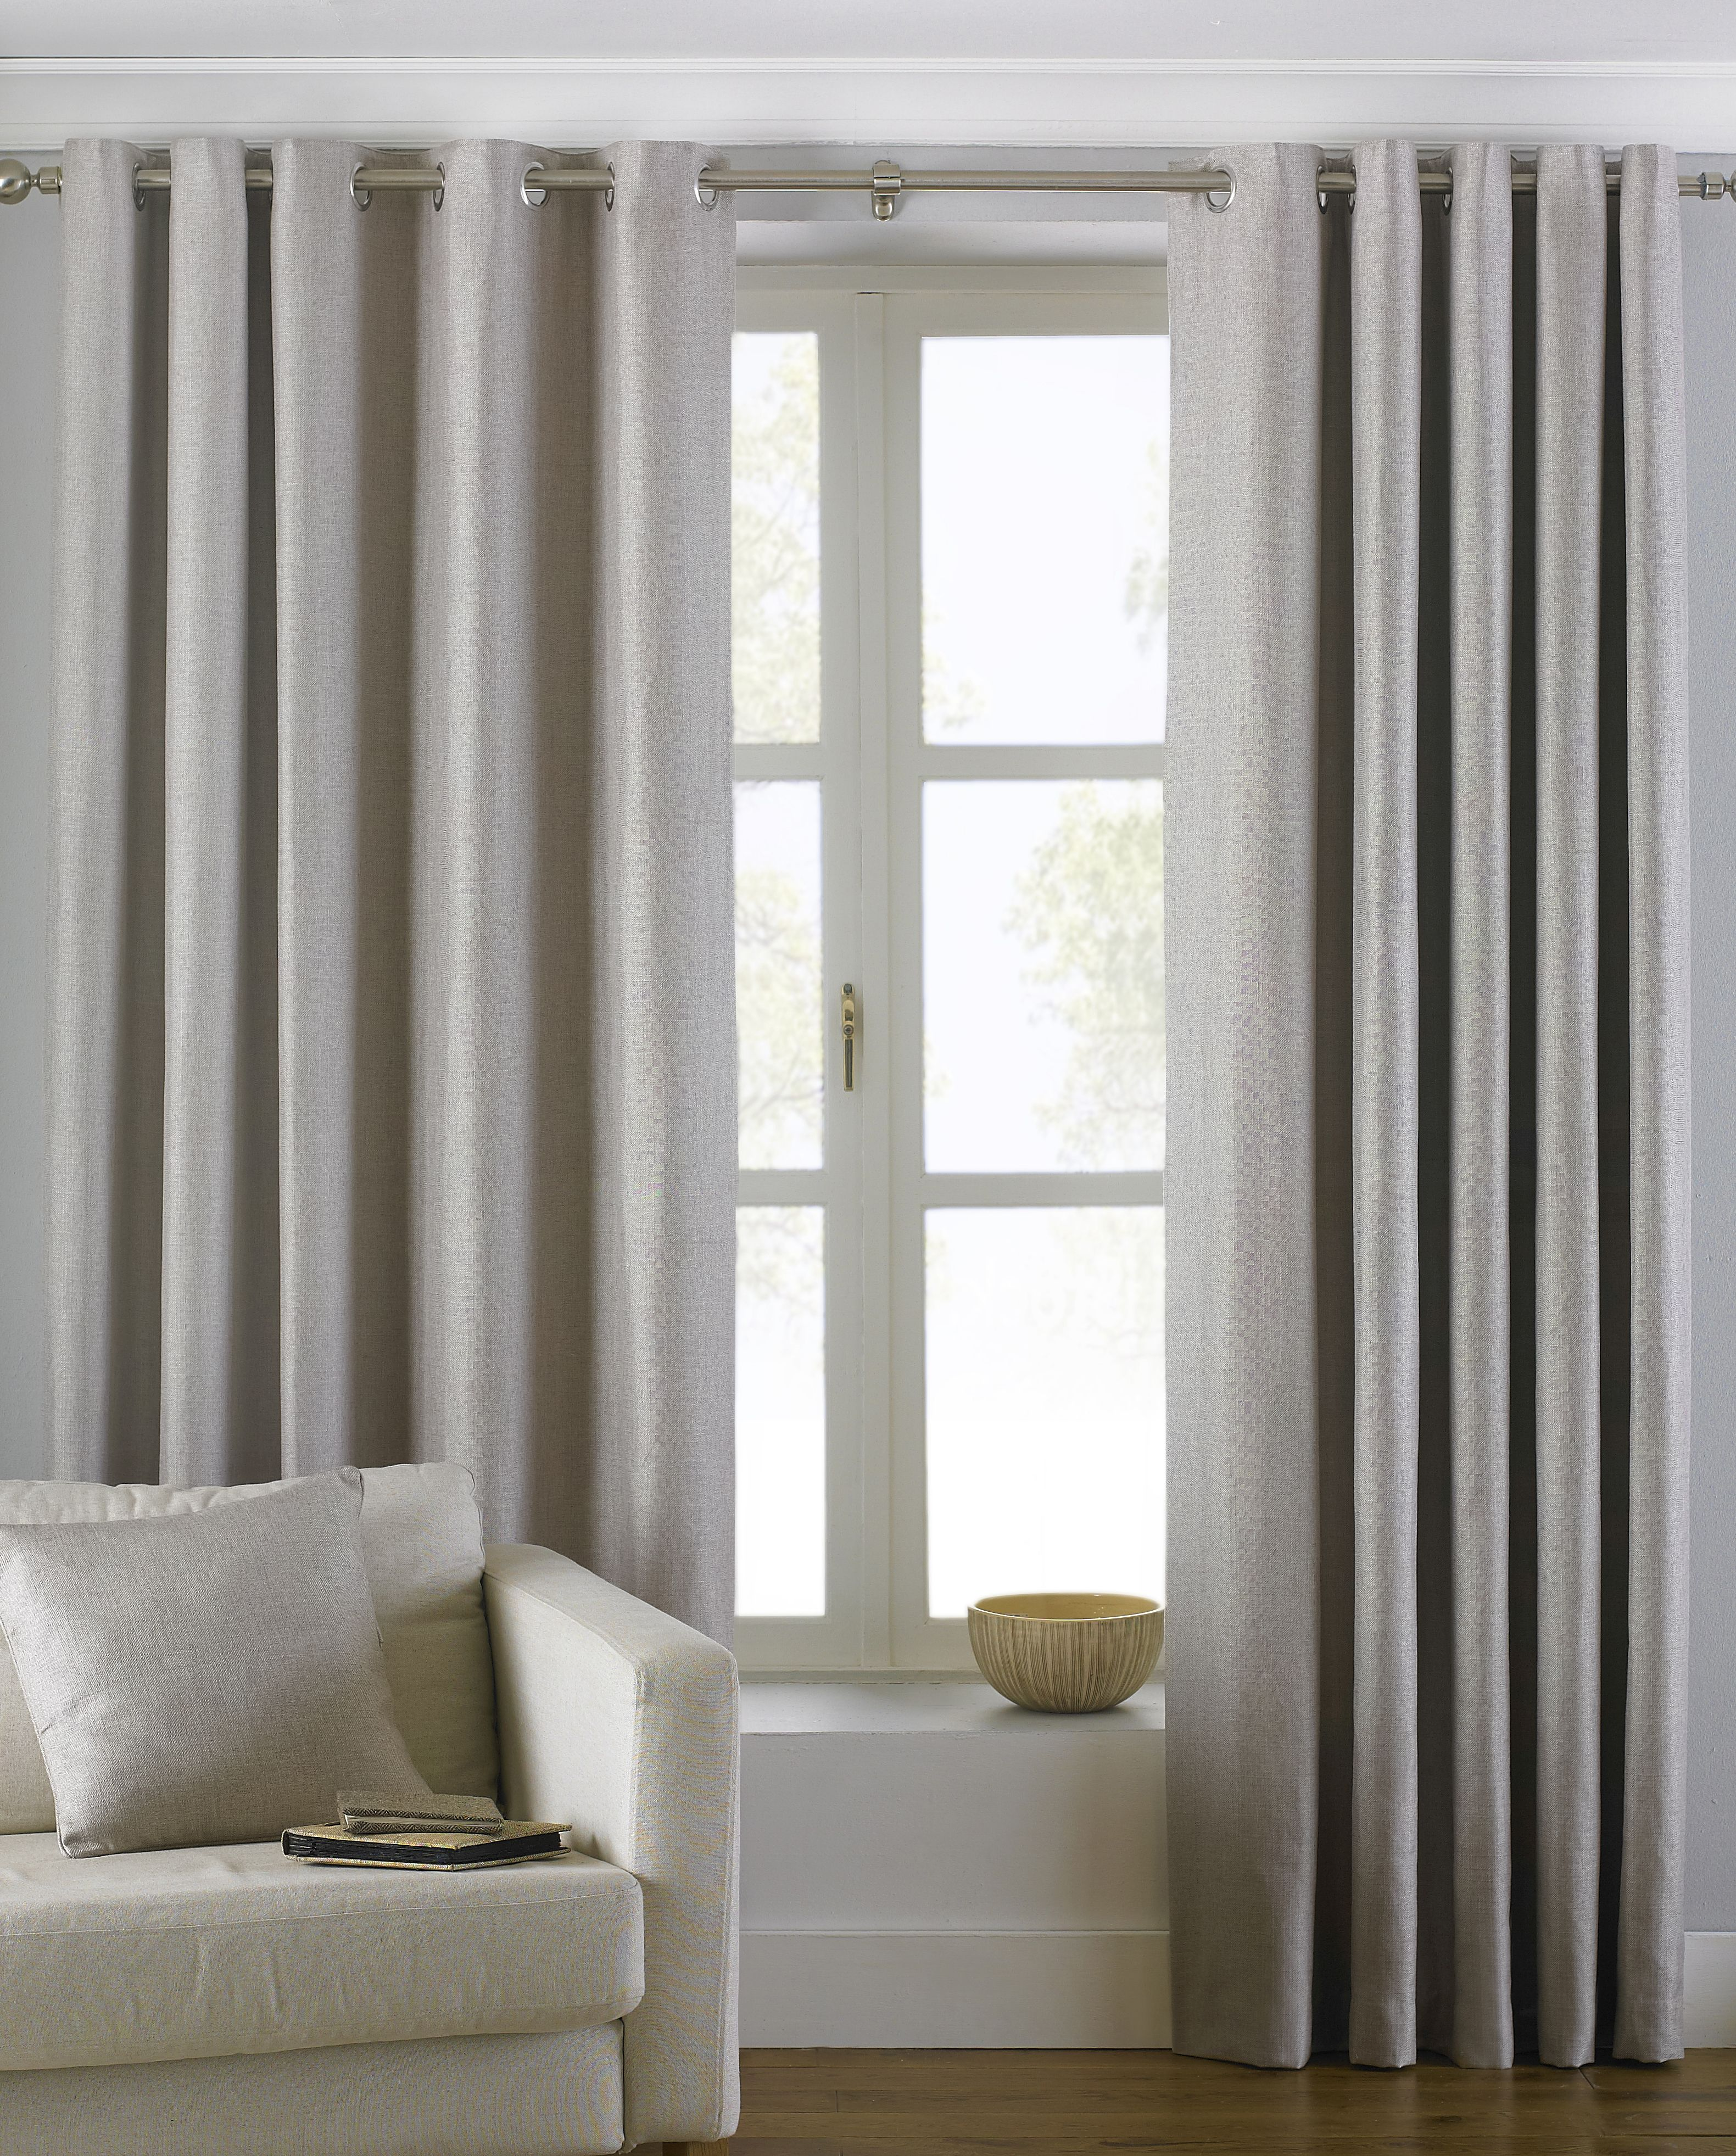 Atlantic Twill Woven Eyelet Curtains in Natural